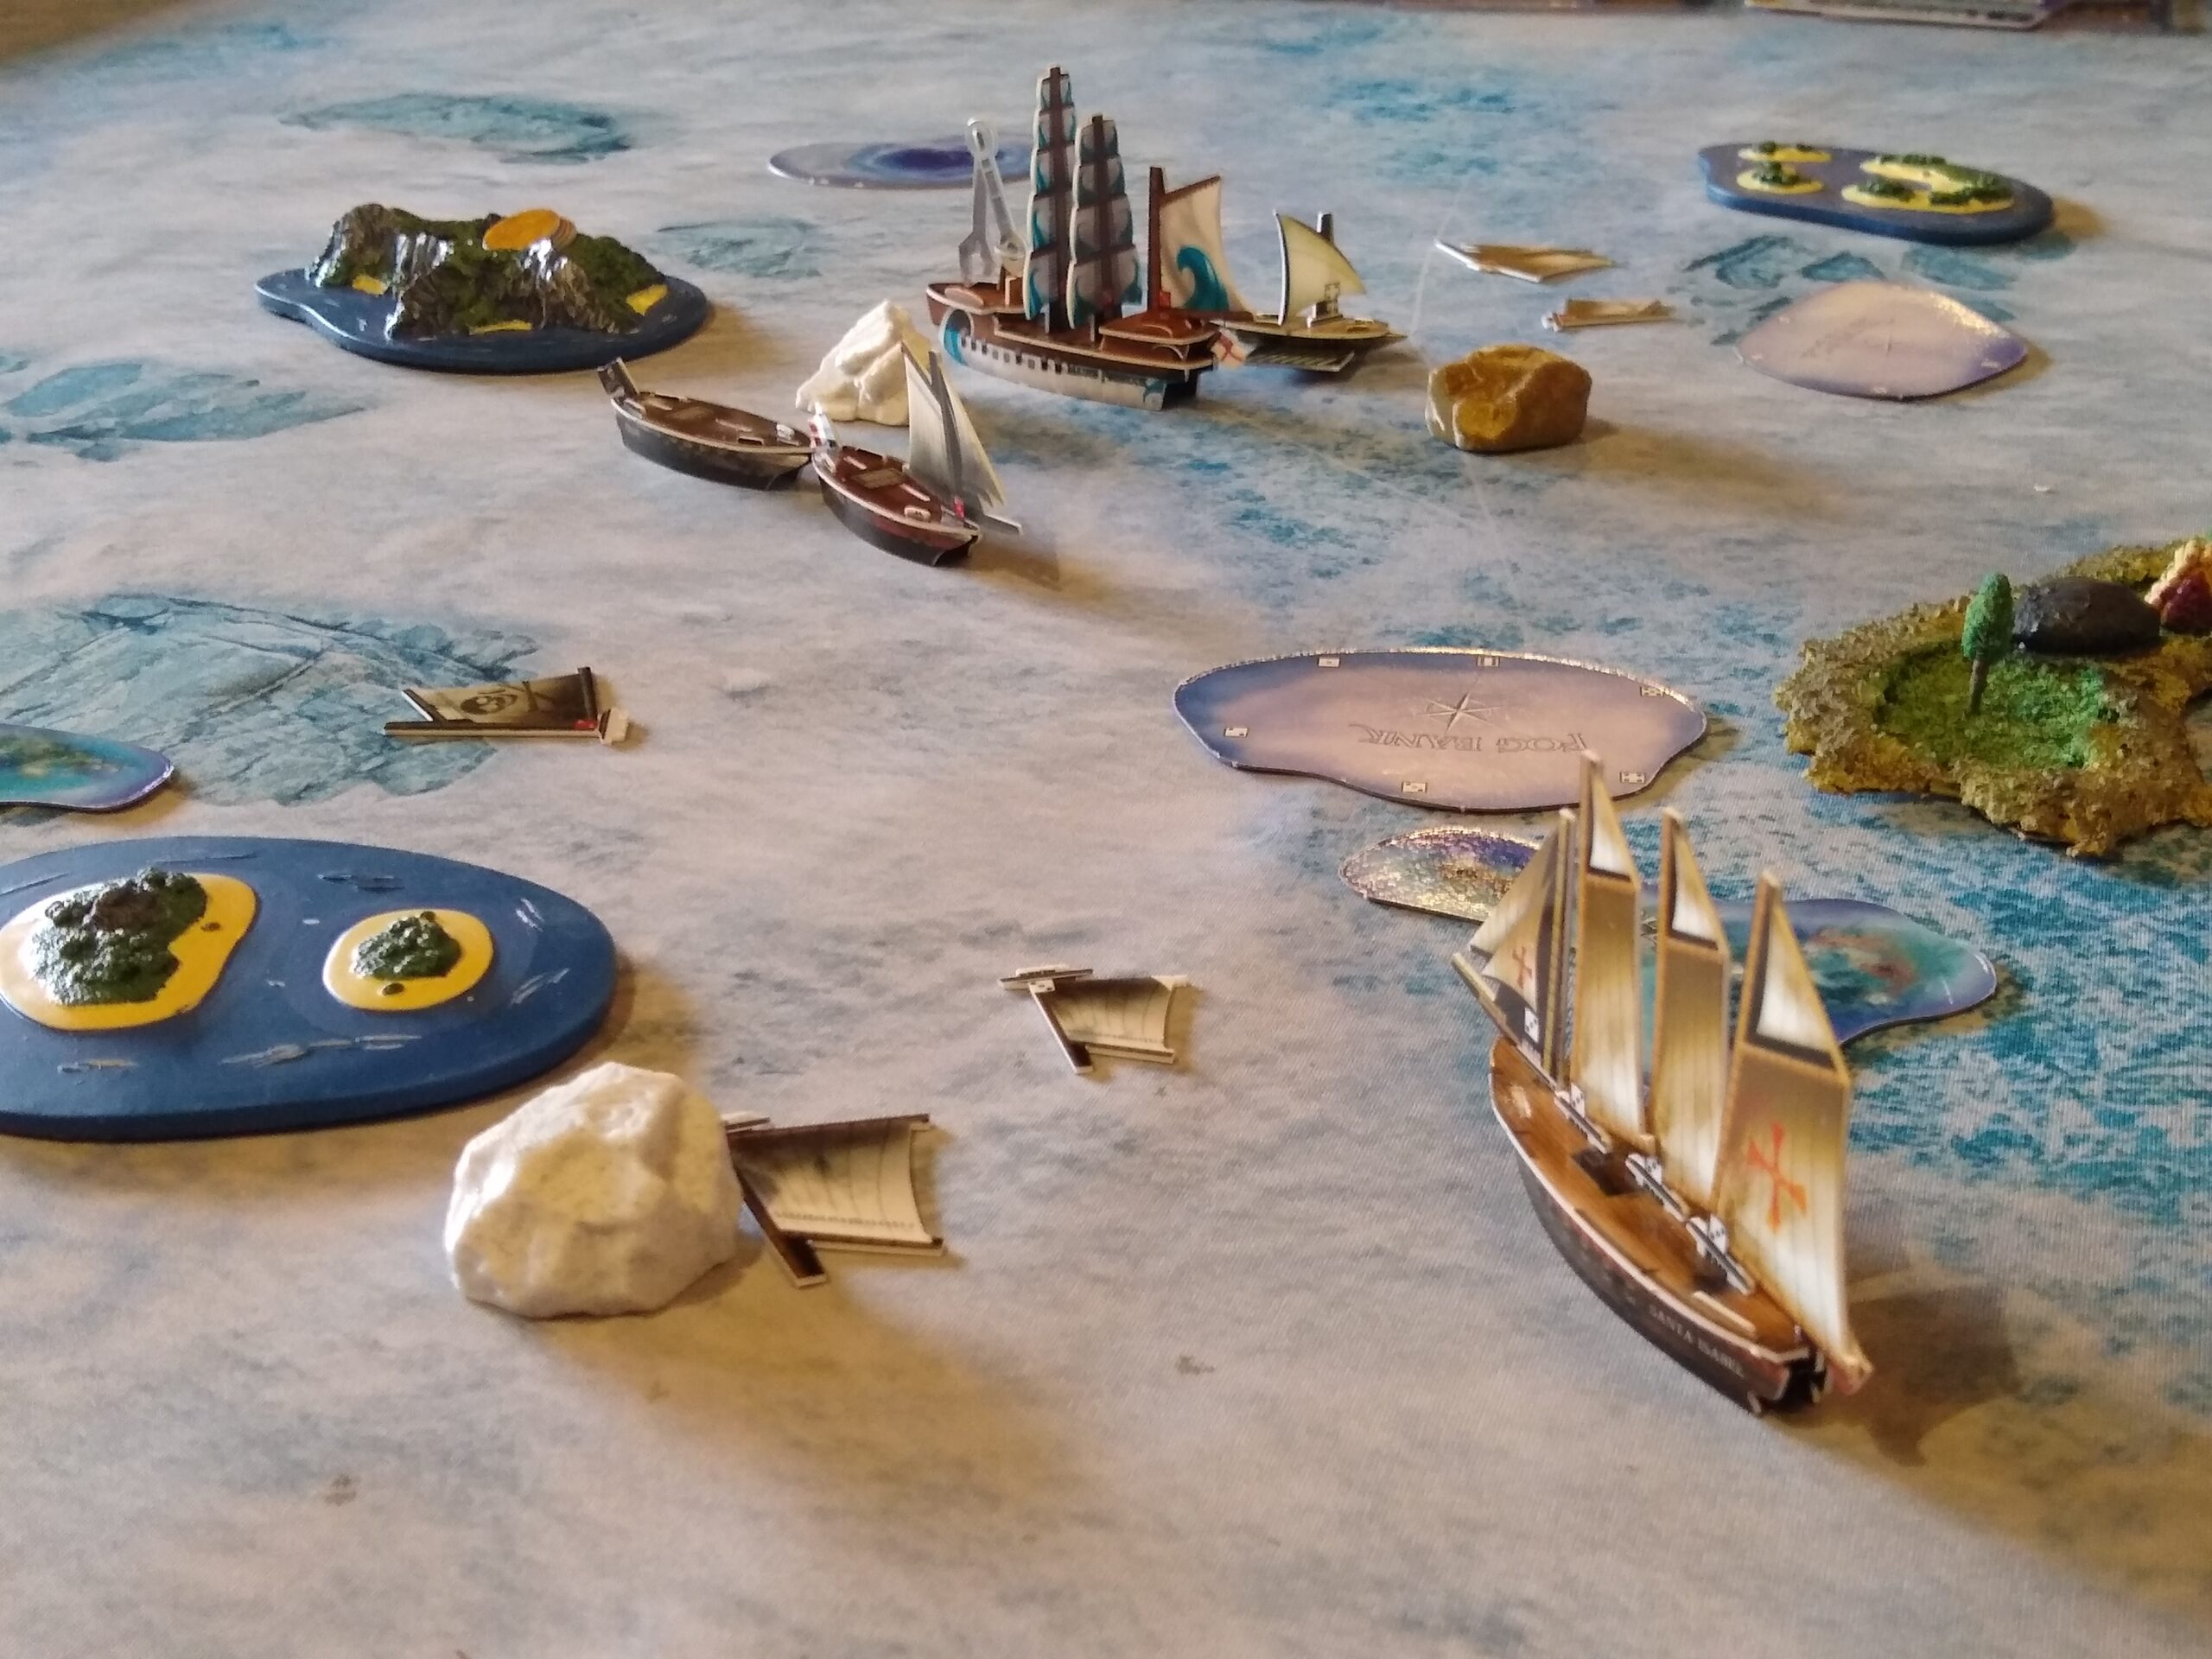 Pirates Constructible Strategy Game on Talk Like a Pirate Day